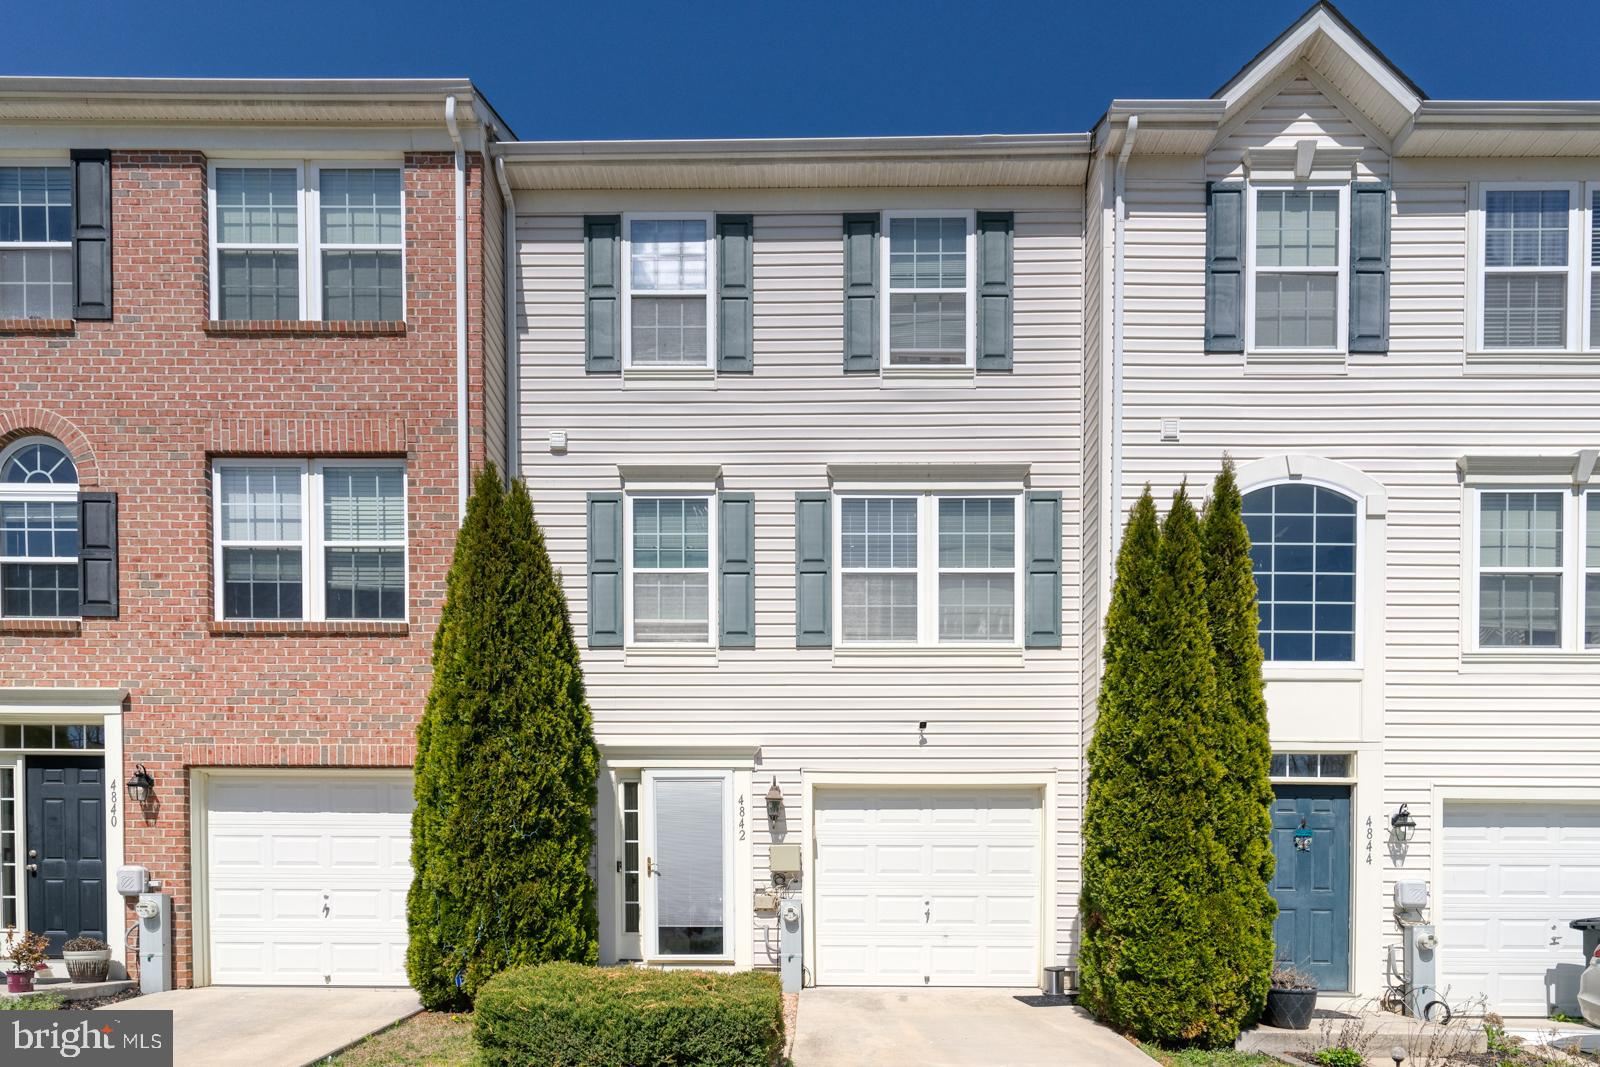 Welcome to 4842 Atlas Cedar Way! This fabulous 3 story garage townhome has 3 bedrooms with a potenti